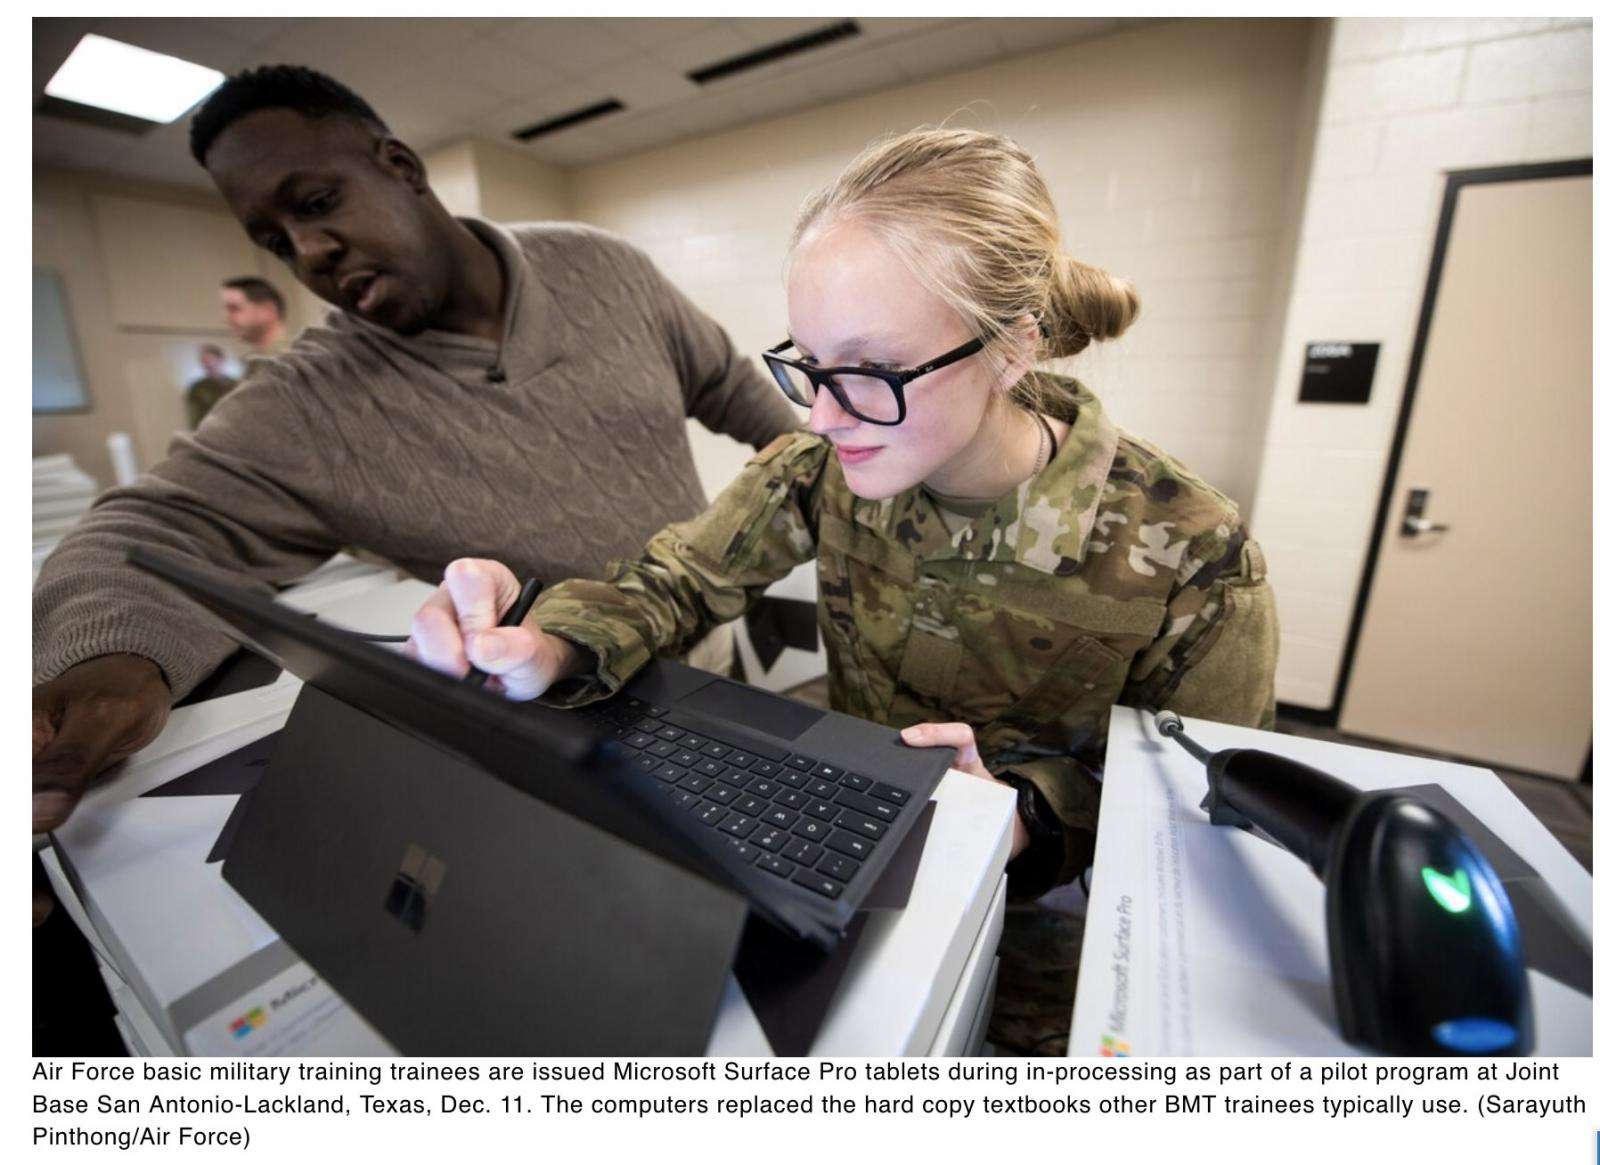 Air Force hopes tablets could revolutionize basic training